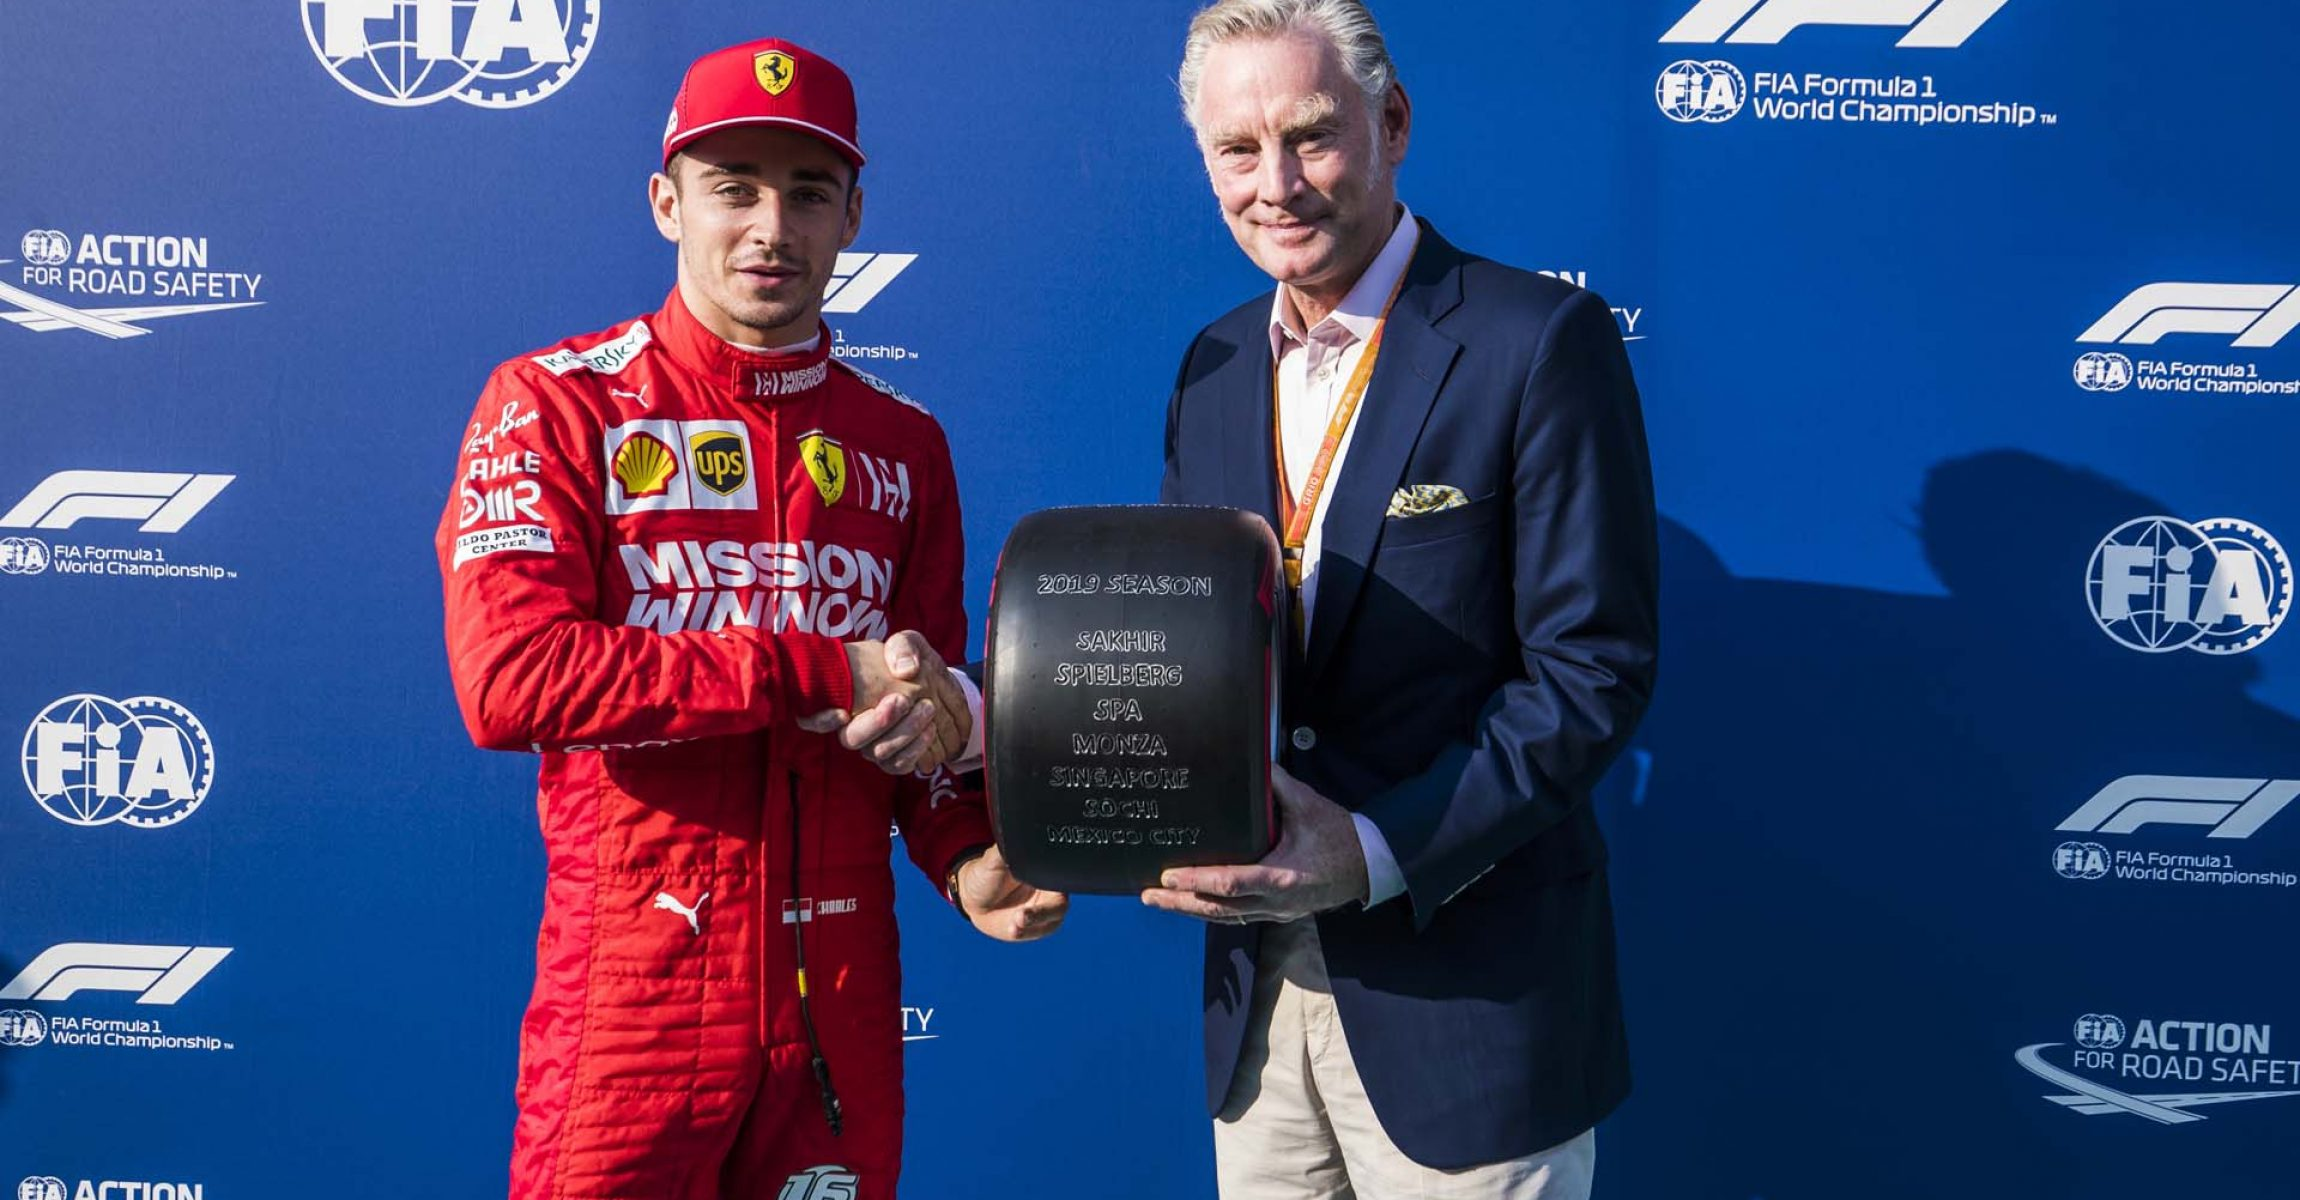 YAS MARINA CIRCUIT, UNITED ARAB EMIRATES - DECEMBER 01: Charles Leclerc, Ferrari, receives the Pirelli Pole Position of 2019 Award from Sean Bratches, Managing Director of Commercial Operations, Formula One Group during the Abu Dhabi GP at Yas Marina Circuit on December 01, 2019 in Yas Marina Circuit, United Arab Emirates. (Photo by Sam Bloxham / LAT Images)